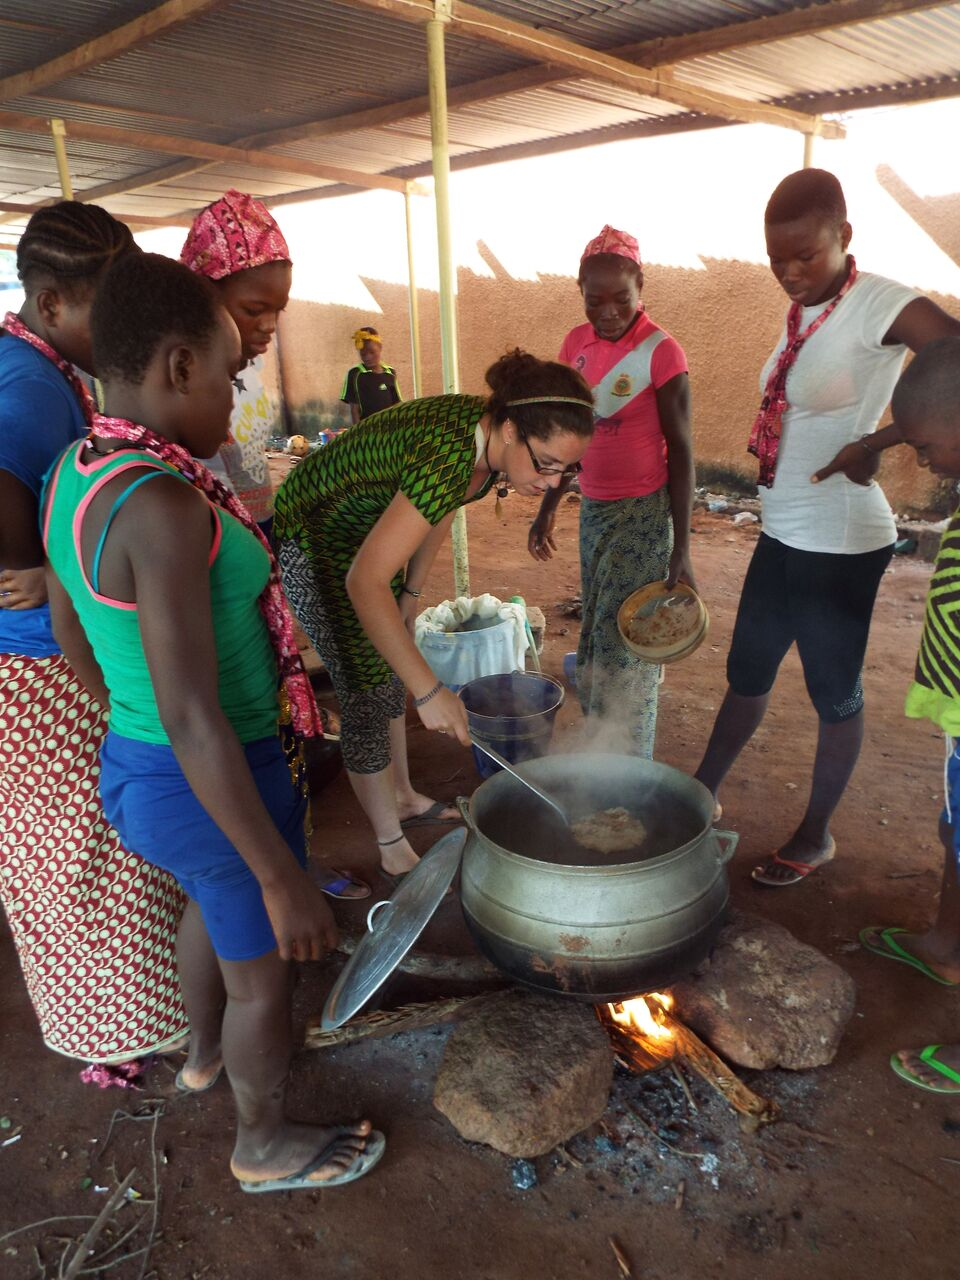 Peace Corps volunteer Charlotte Lane (center) cooks with villagers in Burkina Faso.